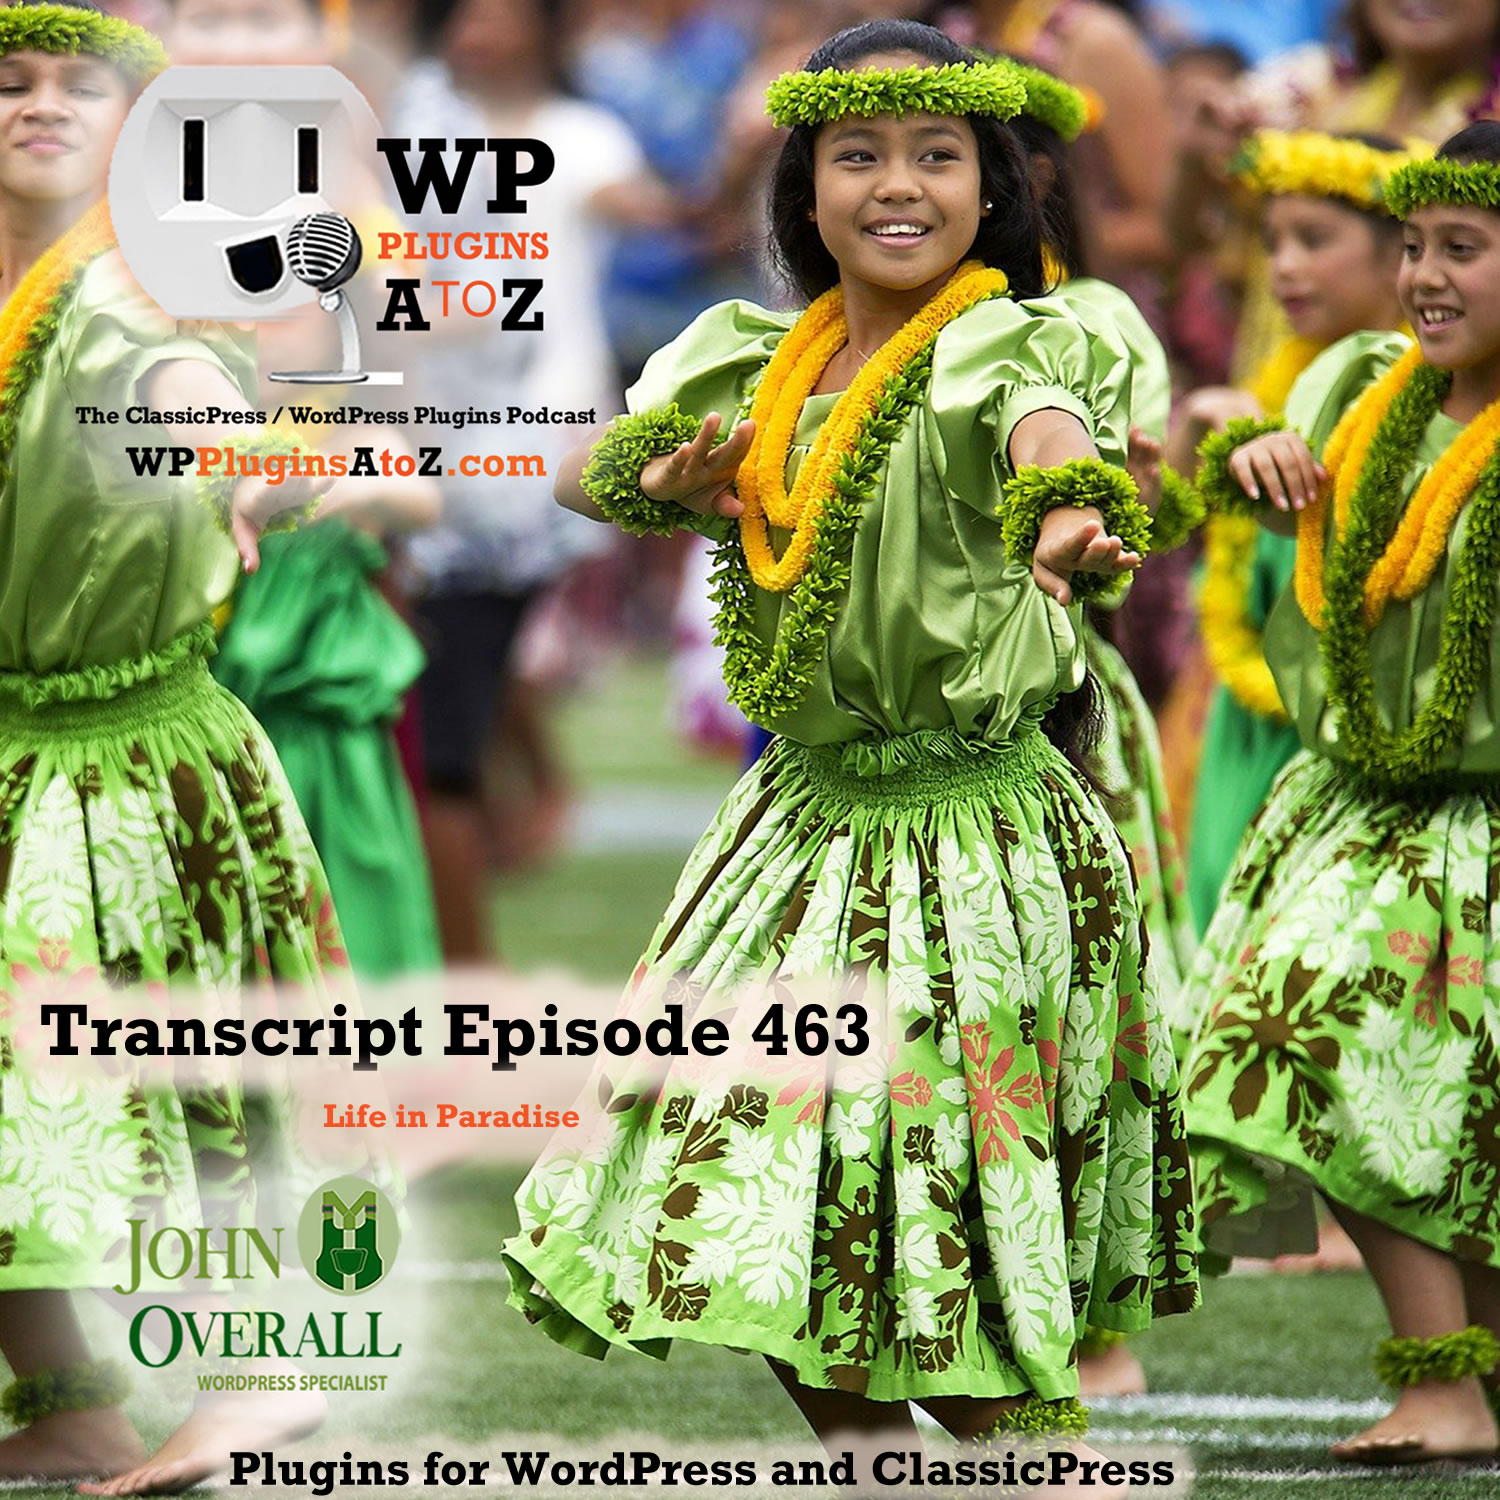 It's Episode 463 with plugins for Happy Files - Happy Life, Keeping Malware and Spam at bay, Tracking Amazon Links and ClassicPress Options. It's all coming up on WordPress Plugins A-Z!